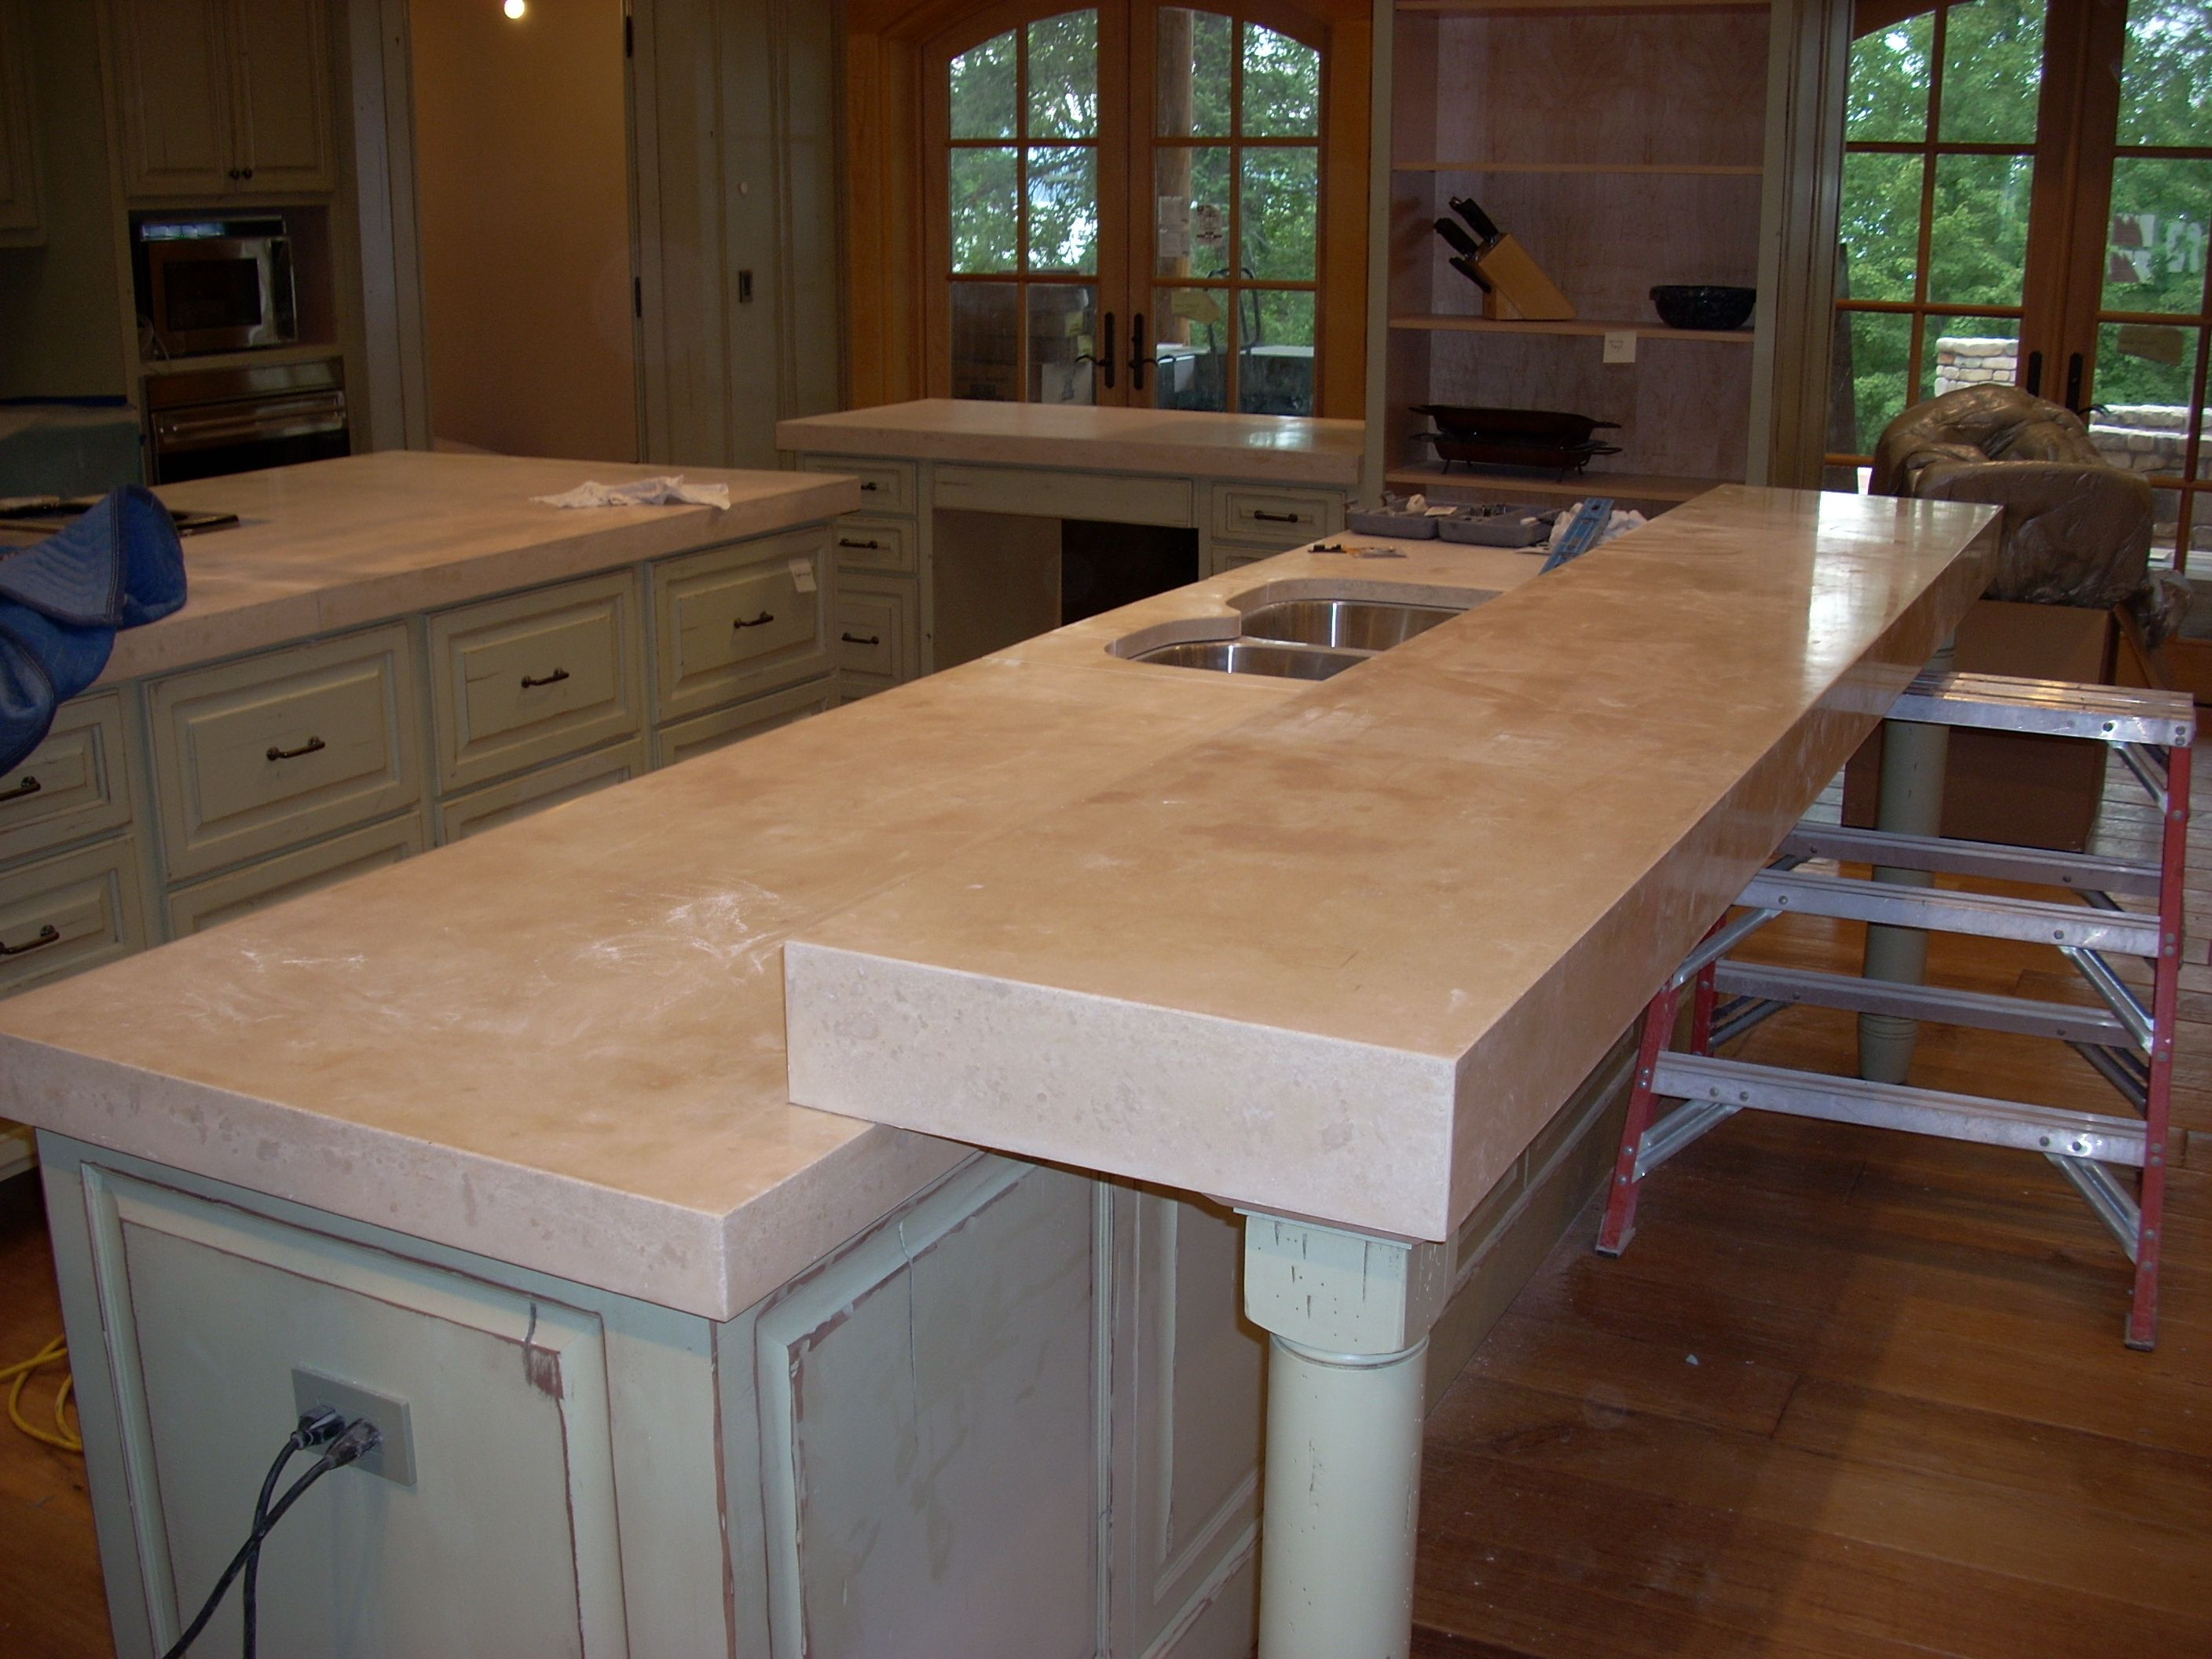 Amazing Cement Countertops Design: Decorating Ideas With Concrete Kitchen  Countertops